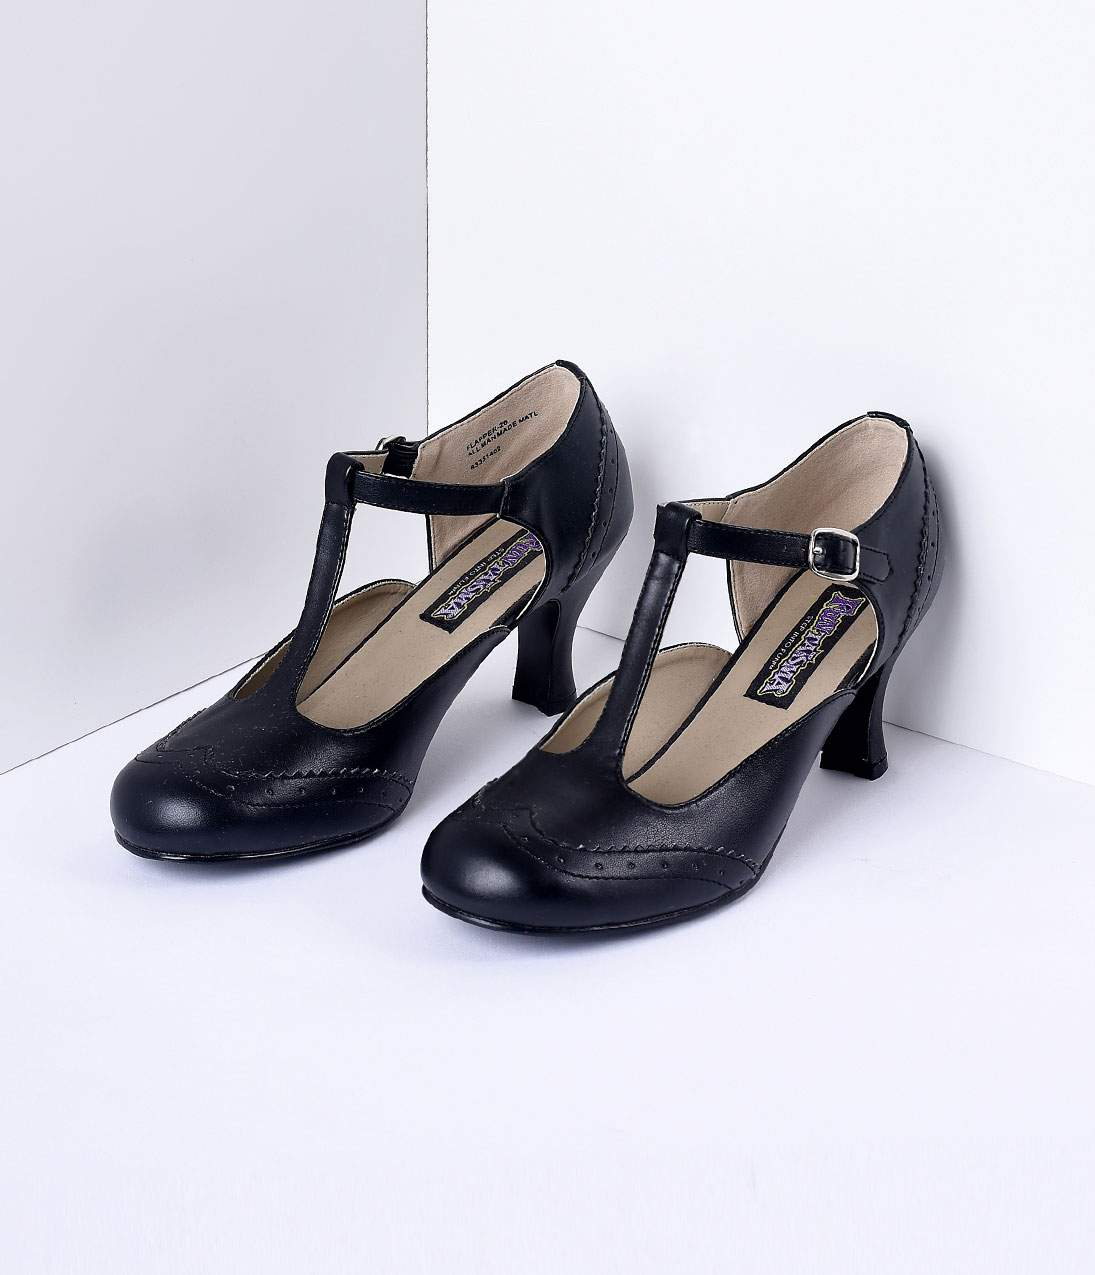 1930s Style Shoes – Art Deco Shoes Black T-Strap Mary Jane Kitten Heels $58.00 AT vintagedancer.com